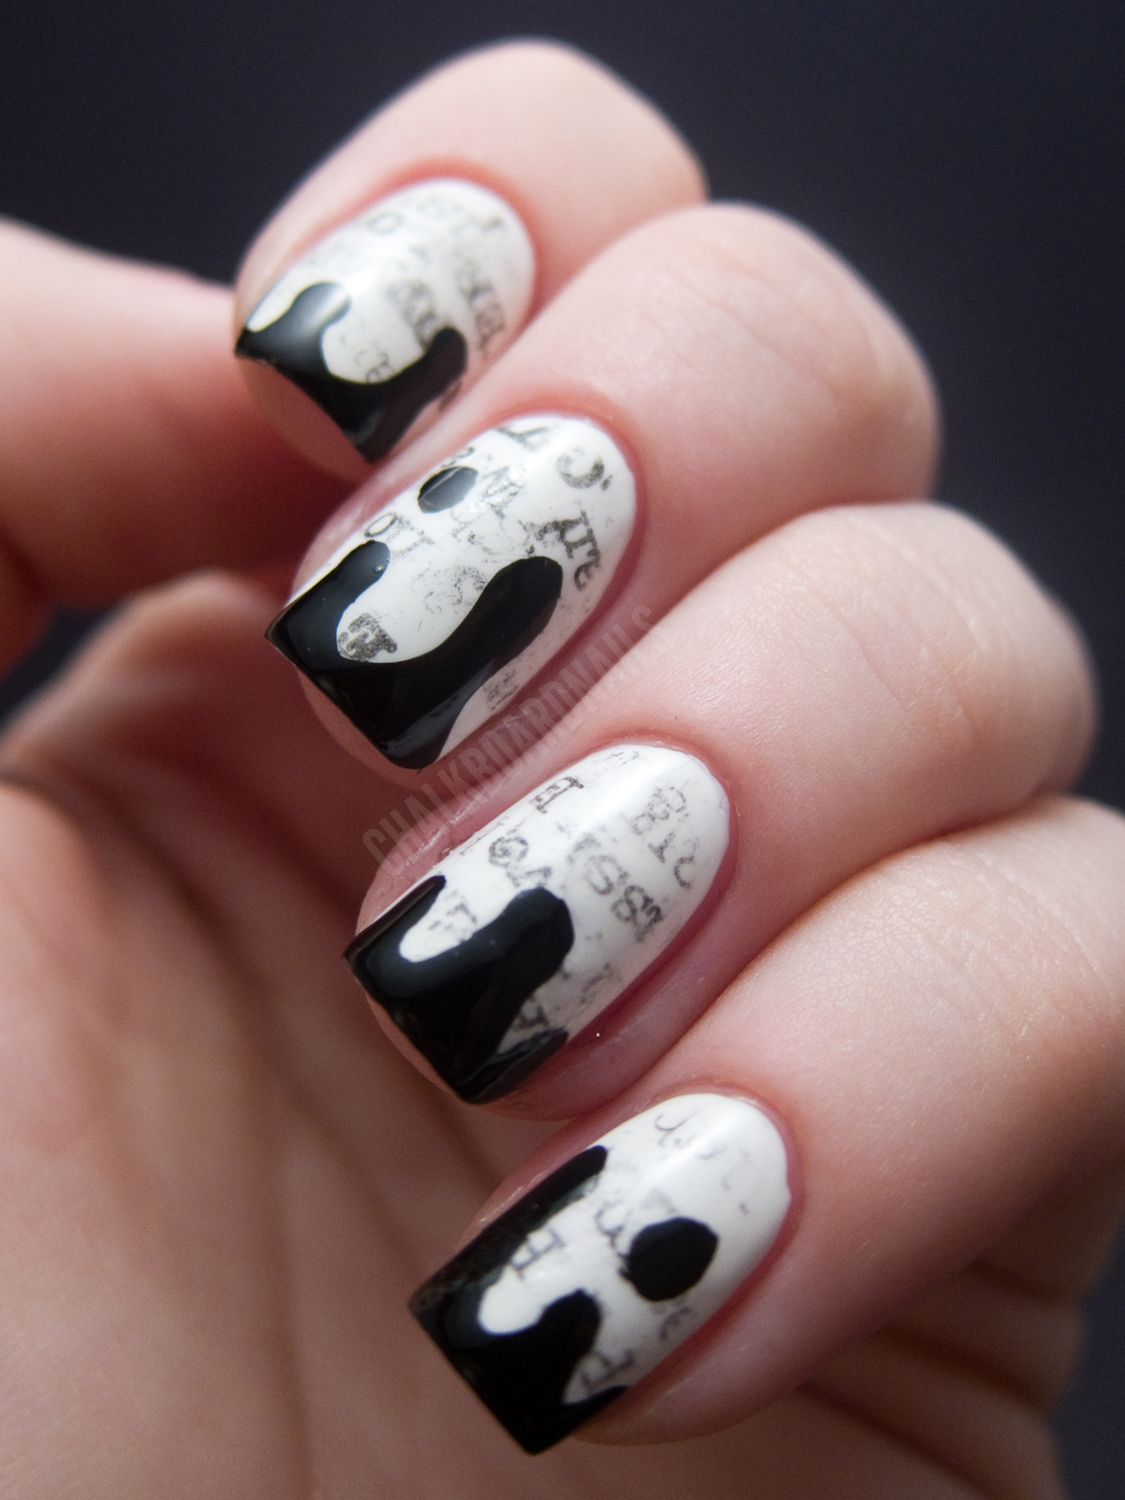 The New Black Typography Set - Daily News | Chalkboard Nails | Nail ...